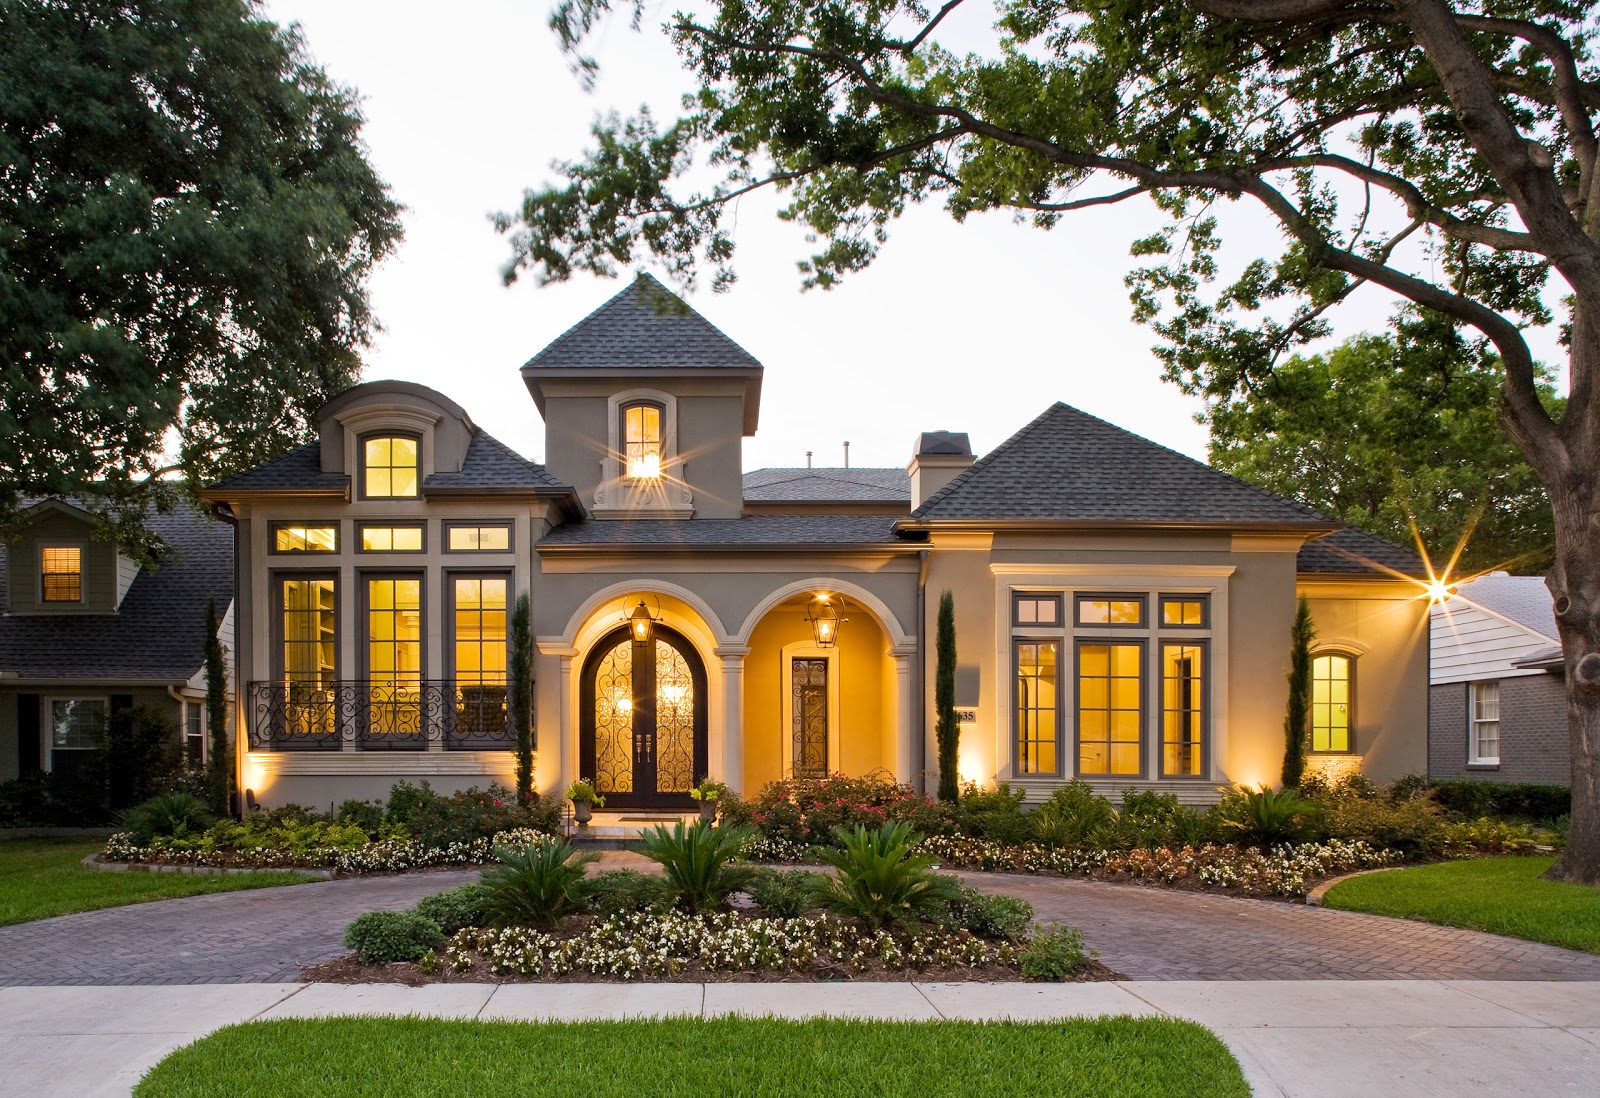 Home design ideas pictures exterior paint house pictures for Design the exterior of your home